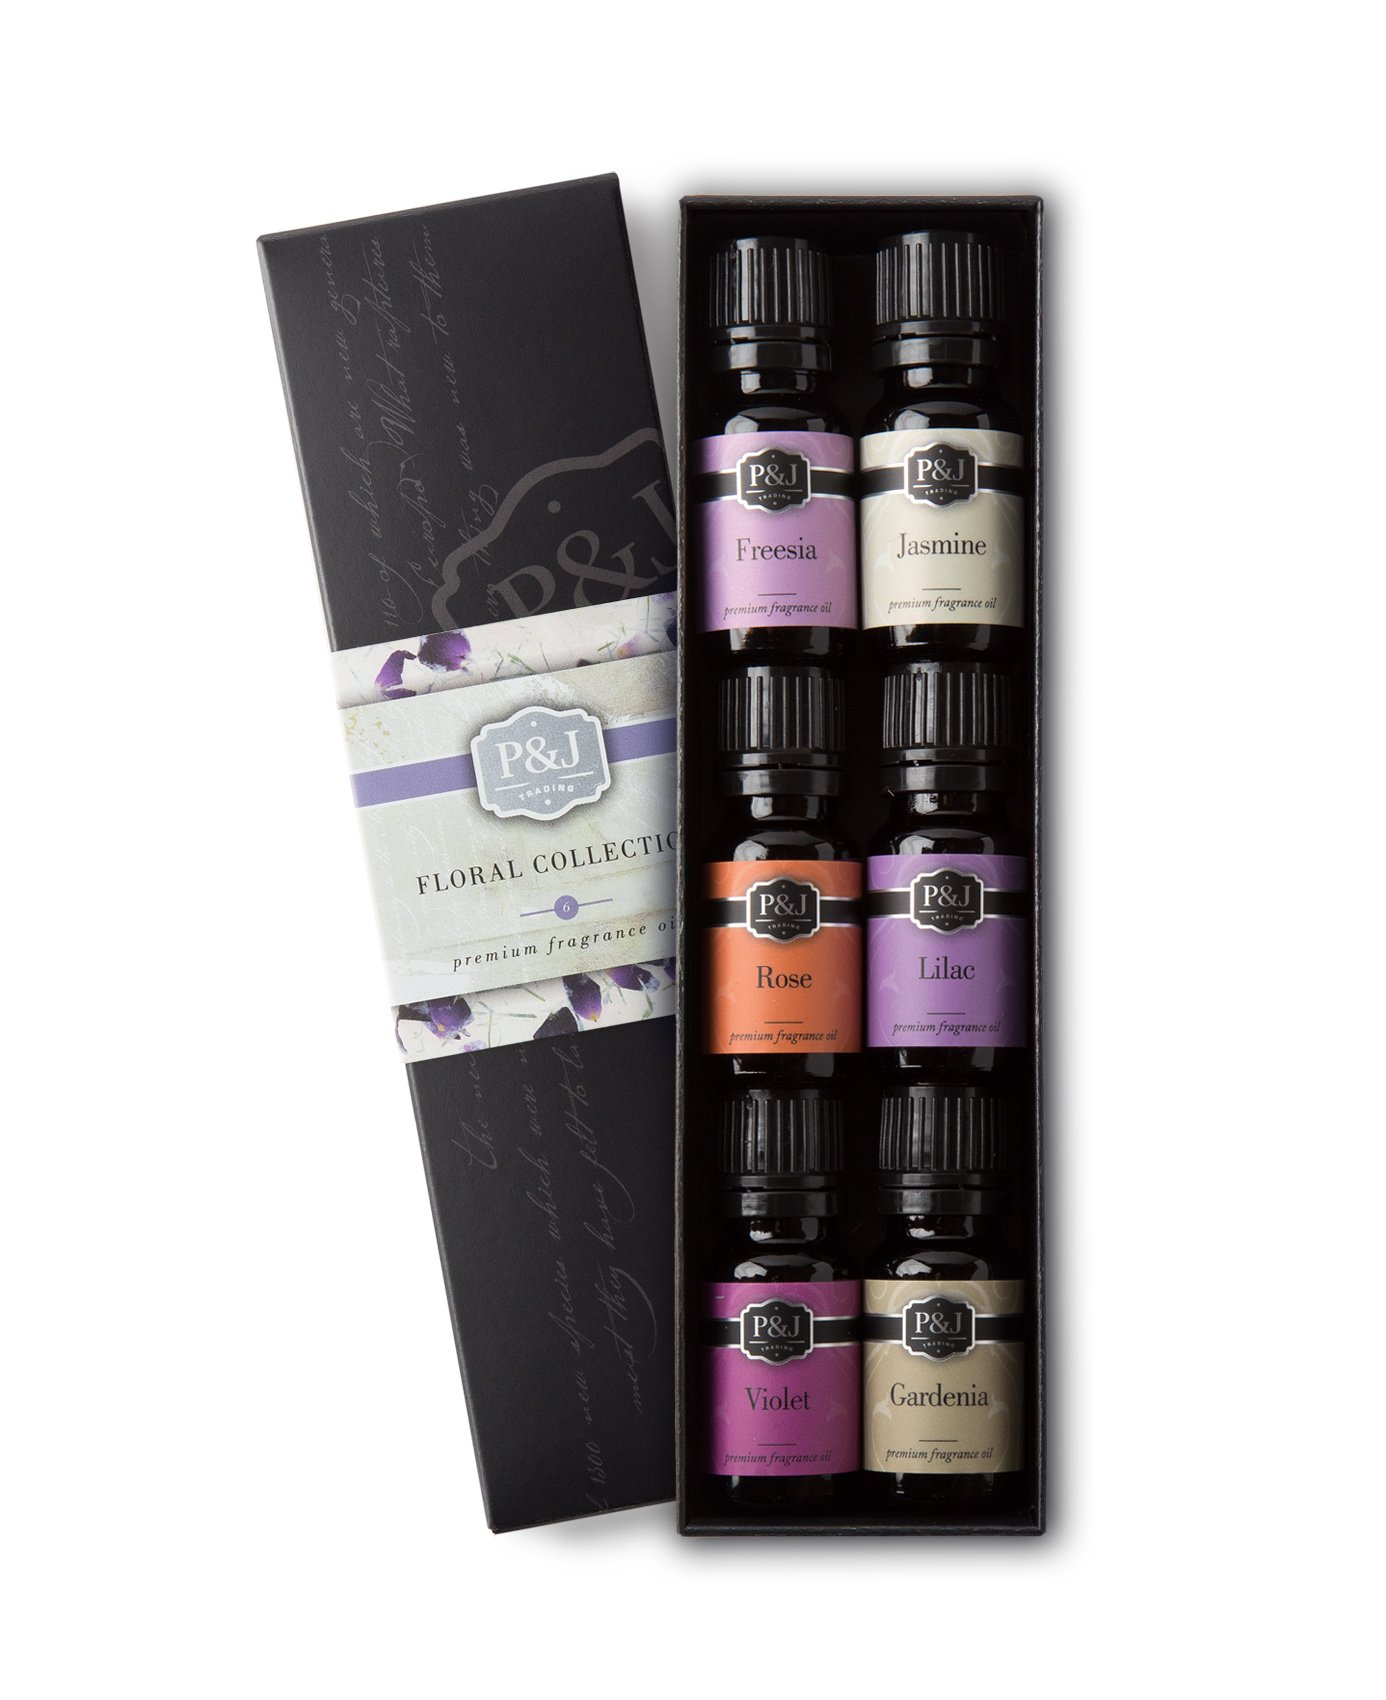 Floral Set of 6 Premium Grade Fragrance Oils - Violet, Jasmine, Rose, Lilac, Freesia, Gardenia - 10ml